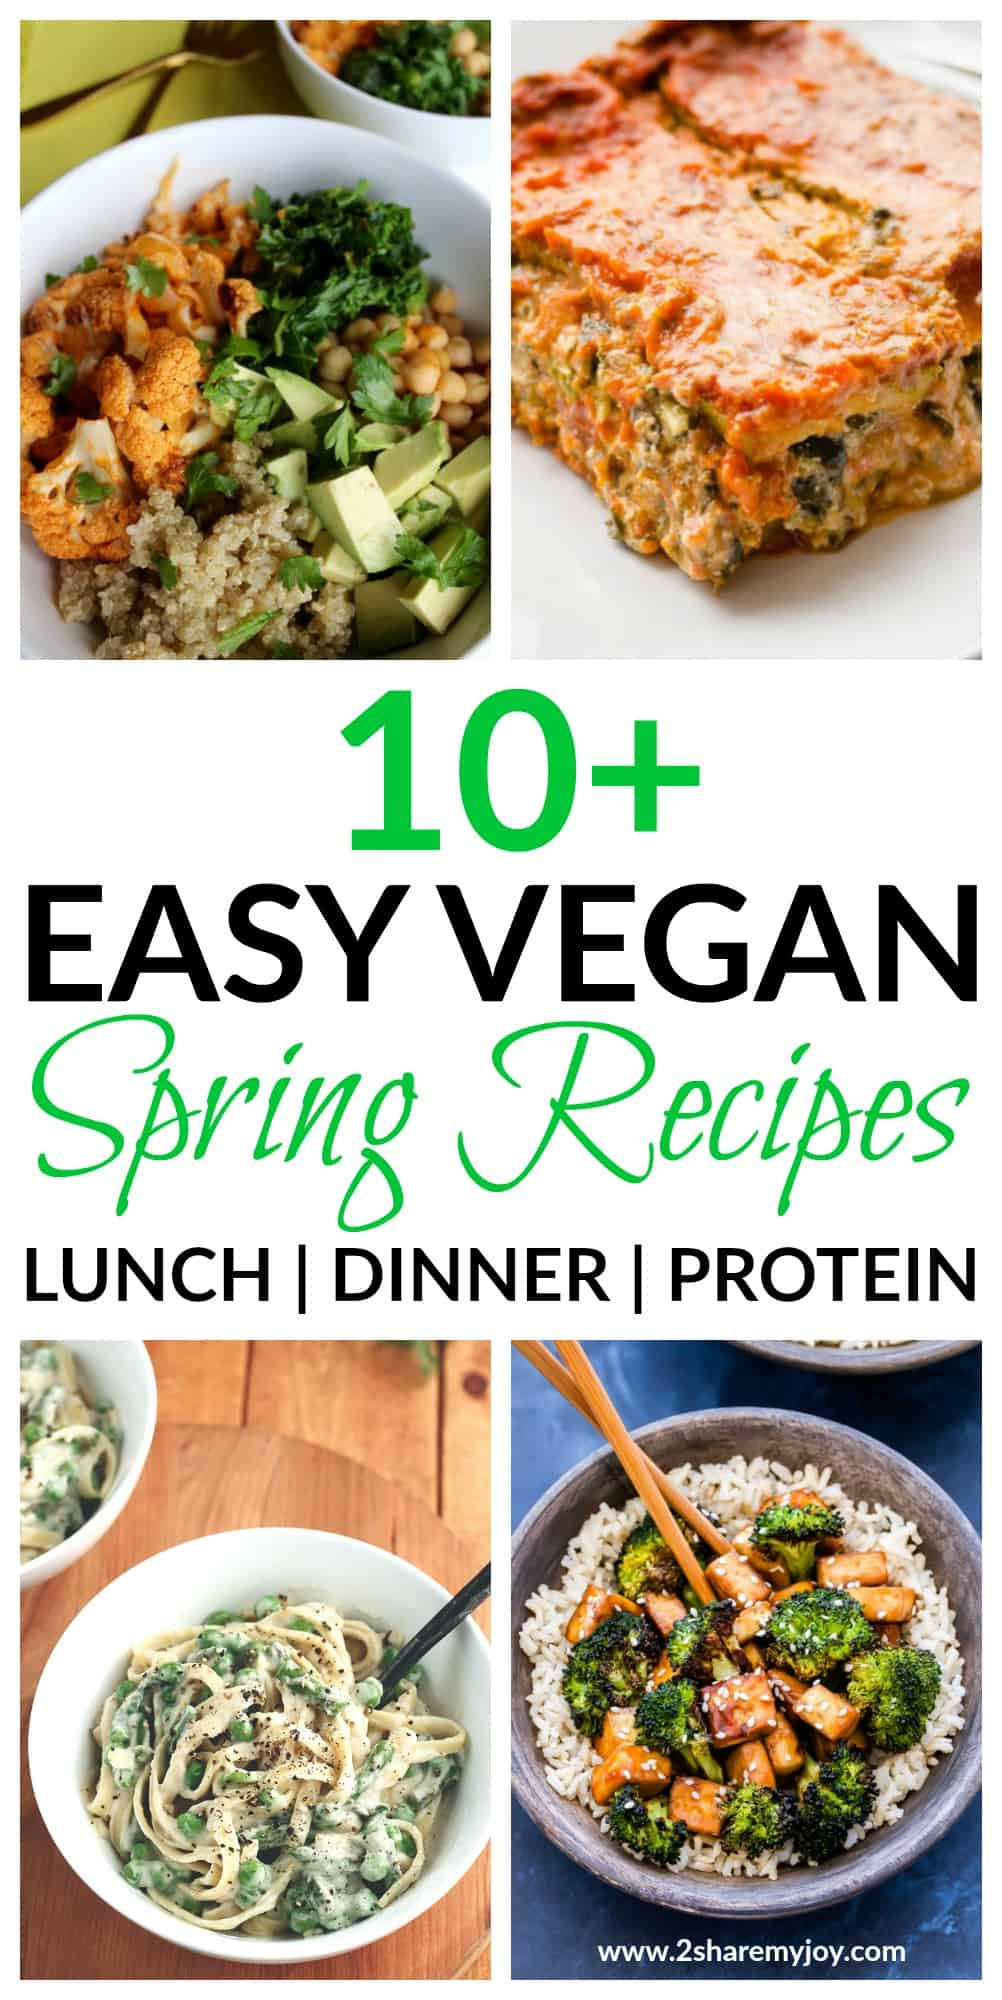 Easy vegan spring recipes for a whole food plant based diet. High protein dinner recipes that can also be used for lunch. These vegan recipes make great weight loss meals too and are budget friendly.